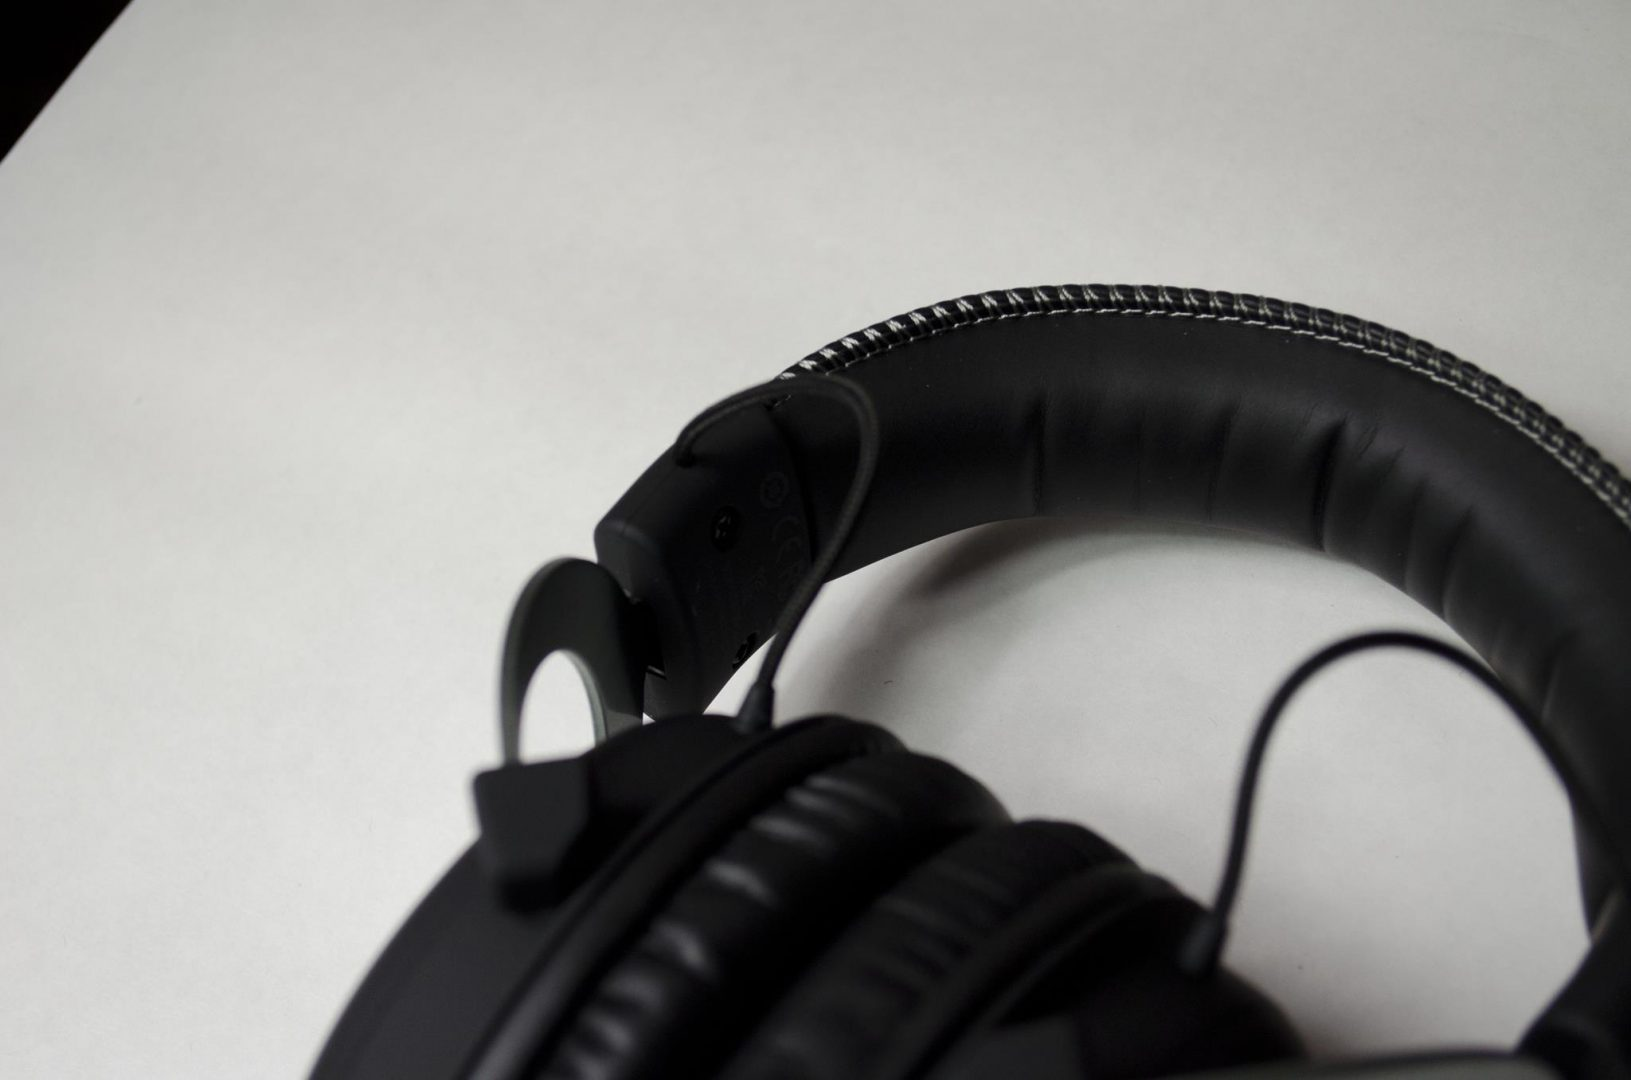 hyperx cloud ii headphones review_12